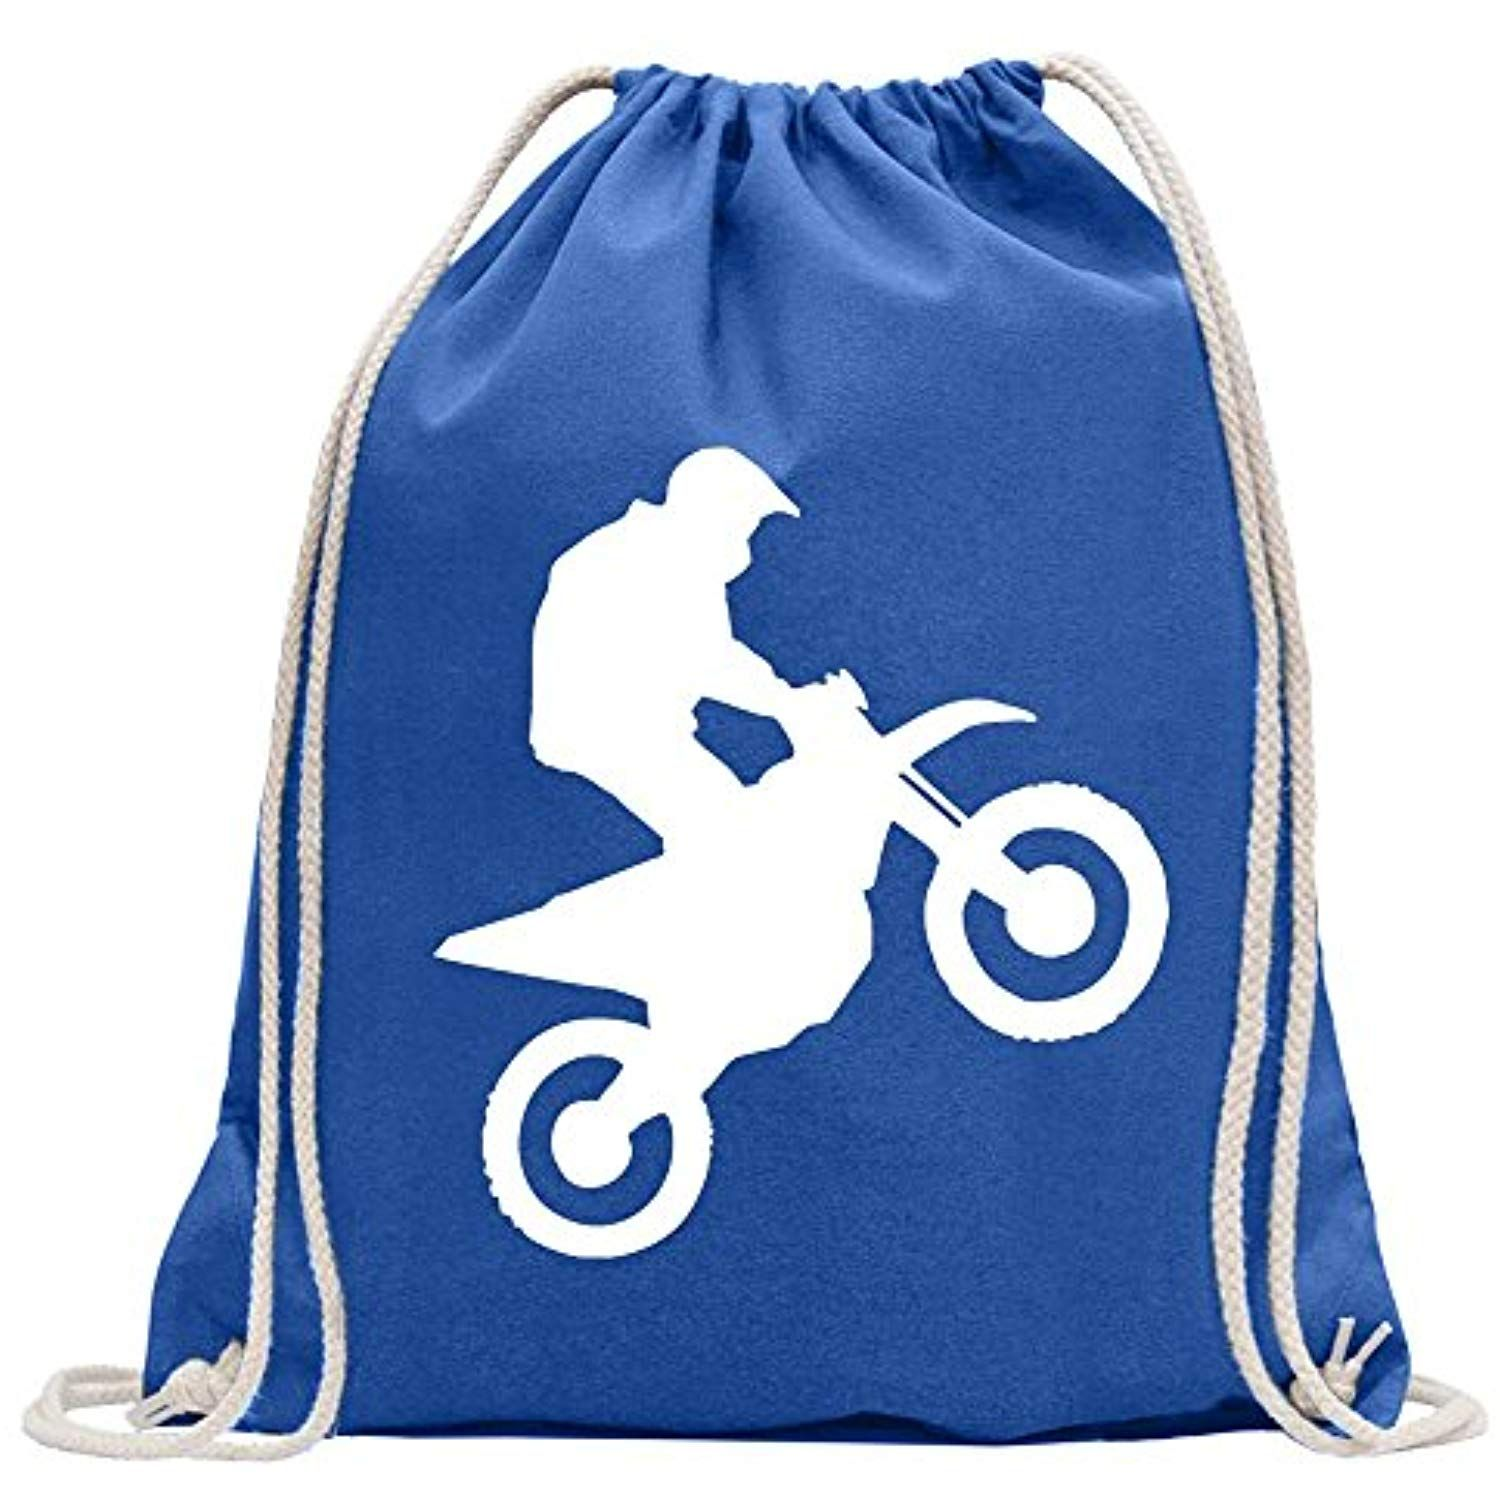 KIWISTAR Motocross Motorcycle Bike Fun backpack sports